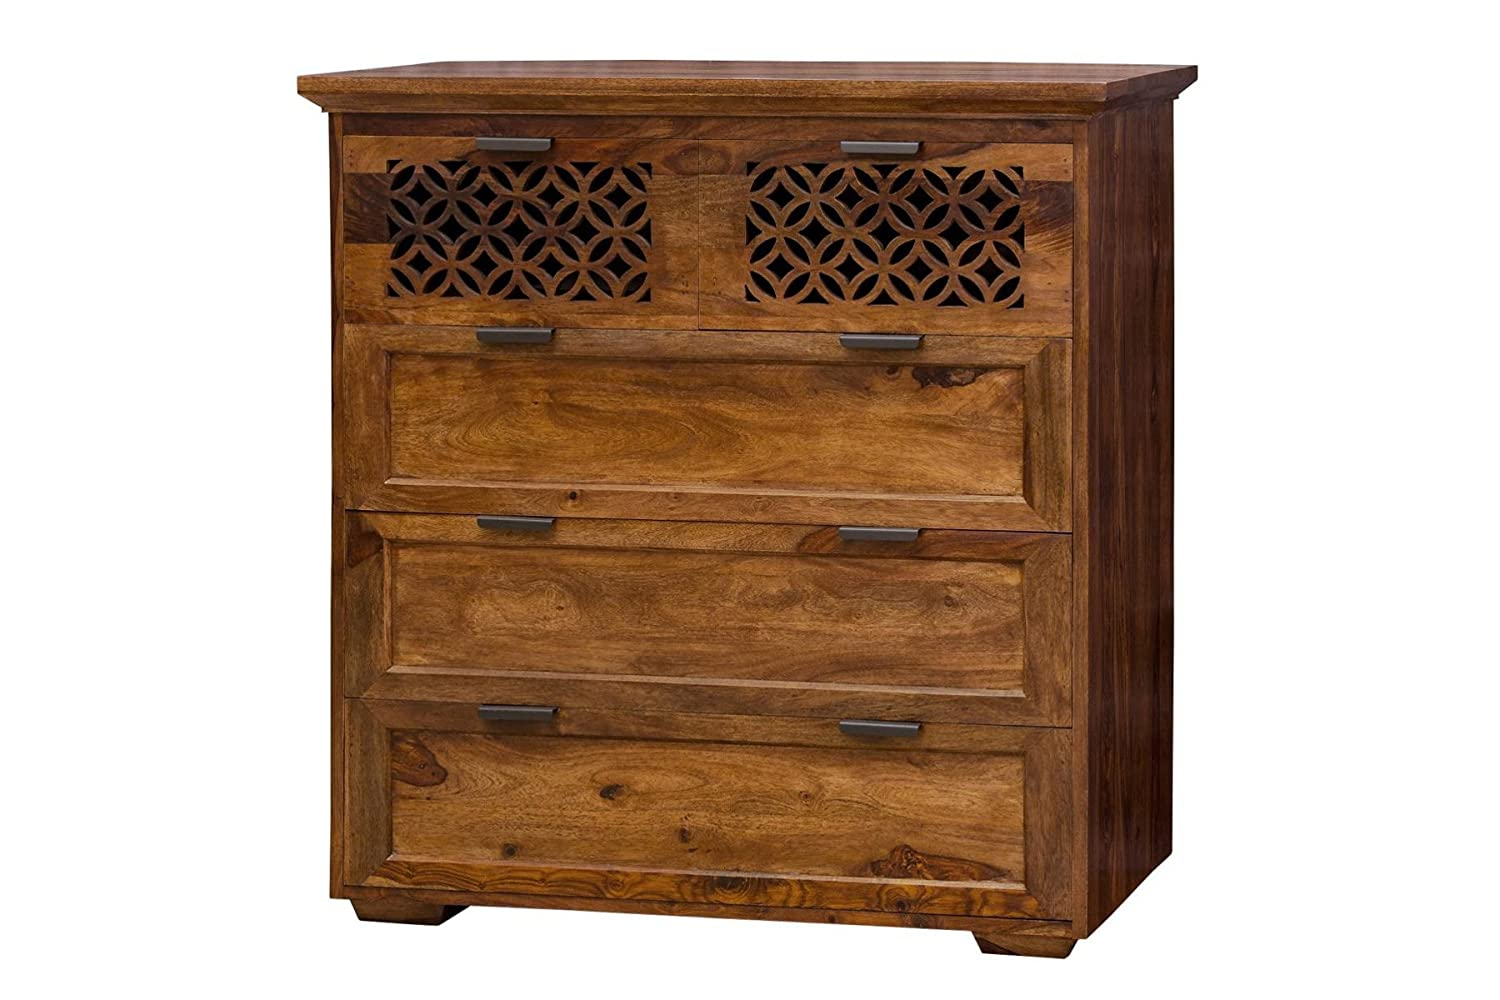 Rolkdy Drawer Chest  for Home chest drawers for storage,(Lacquered, Honey)